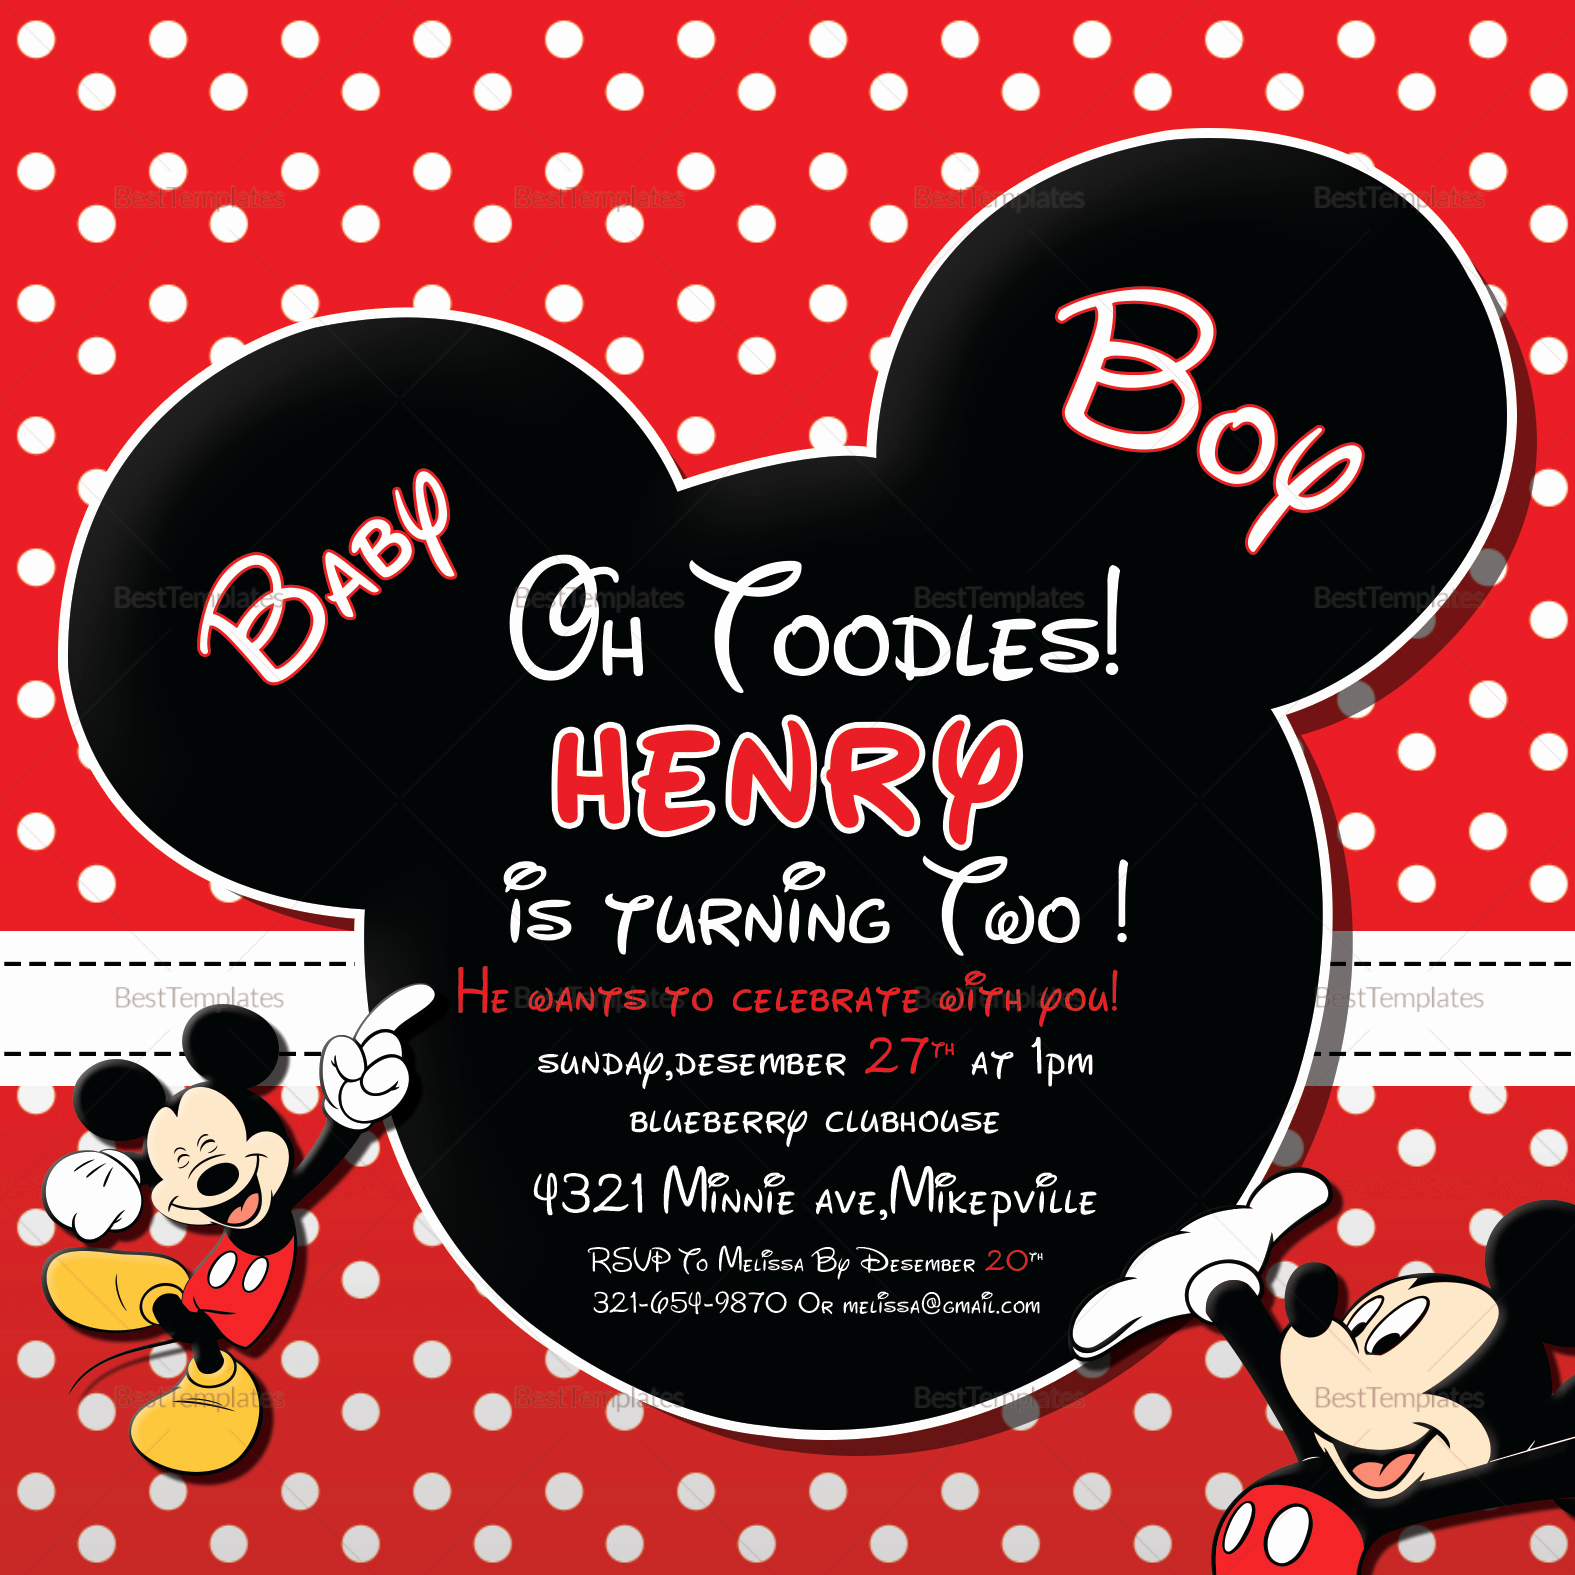 Mickey Mouse Invitation Template Luxury Cute Mickey Mouse Birthday Invitation Design Template In